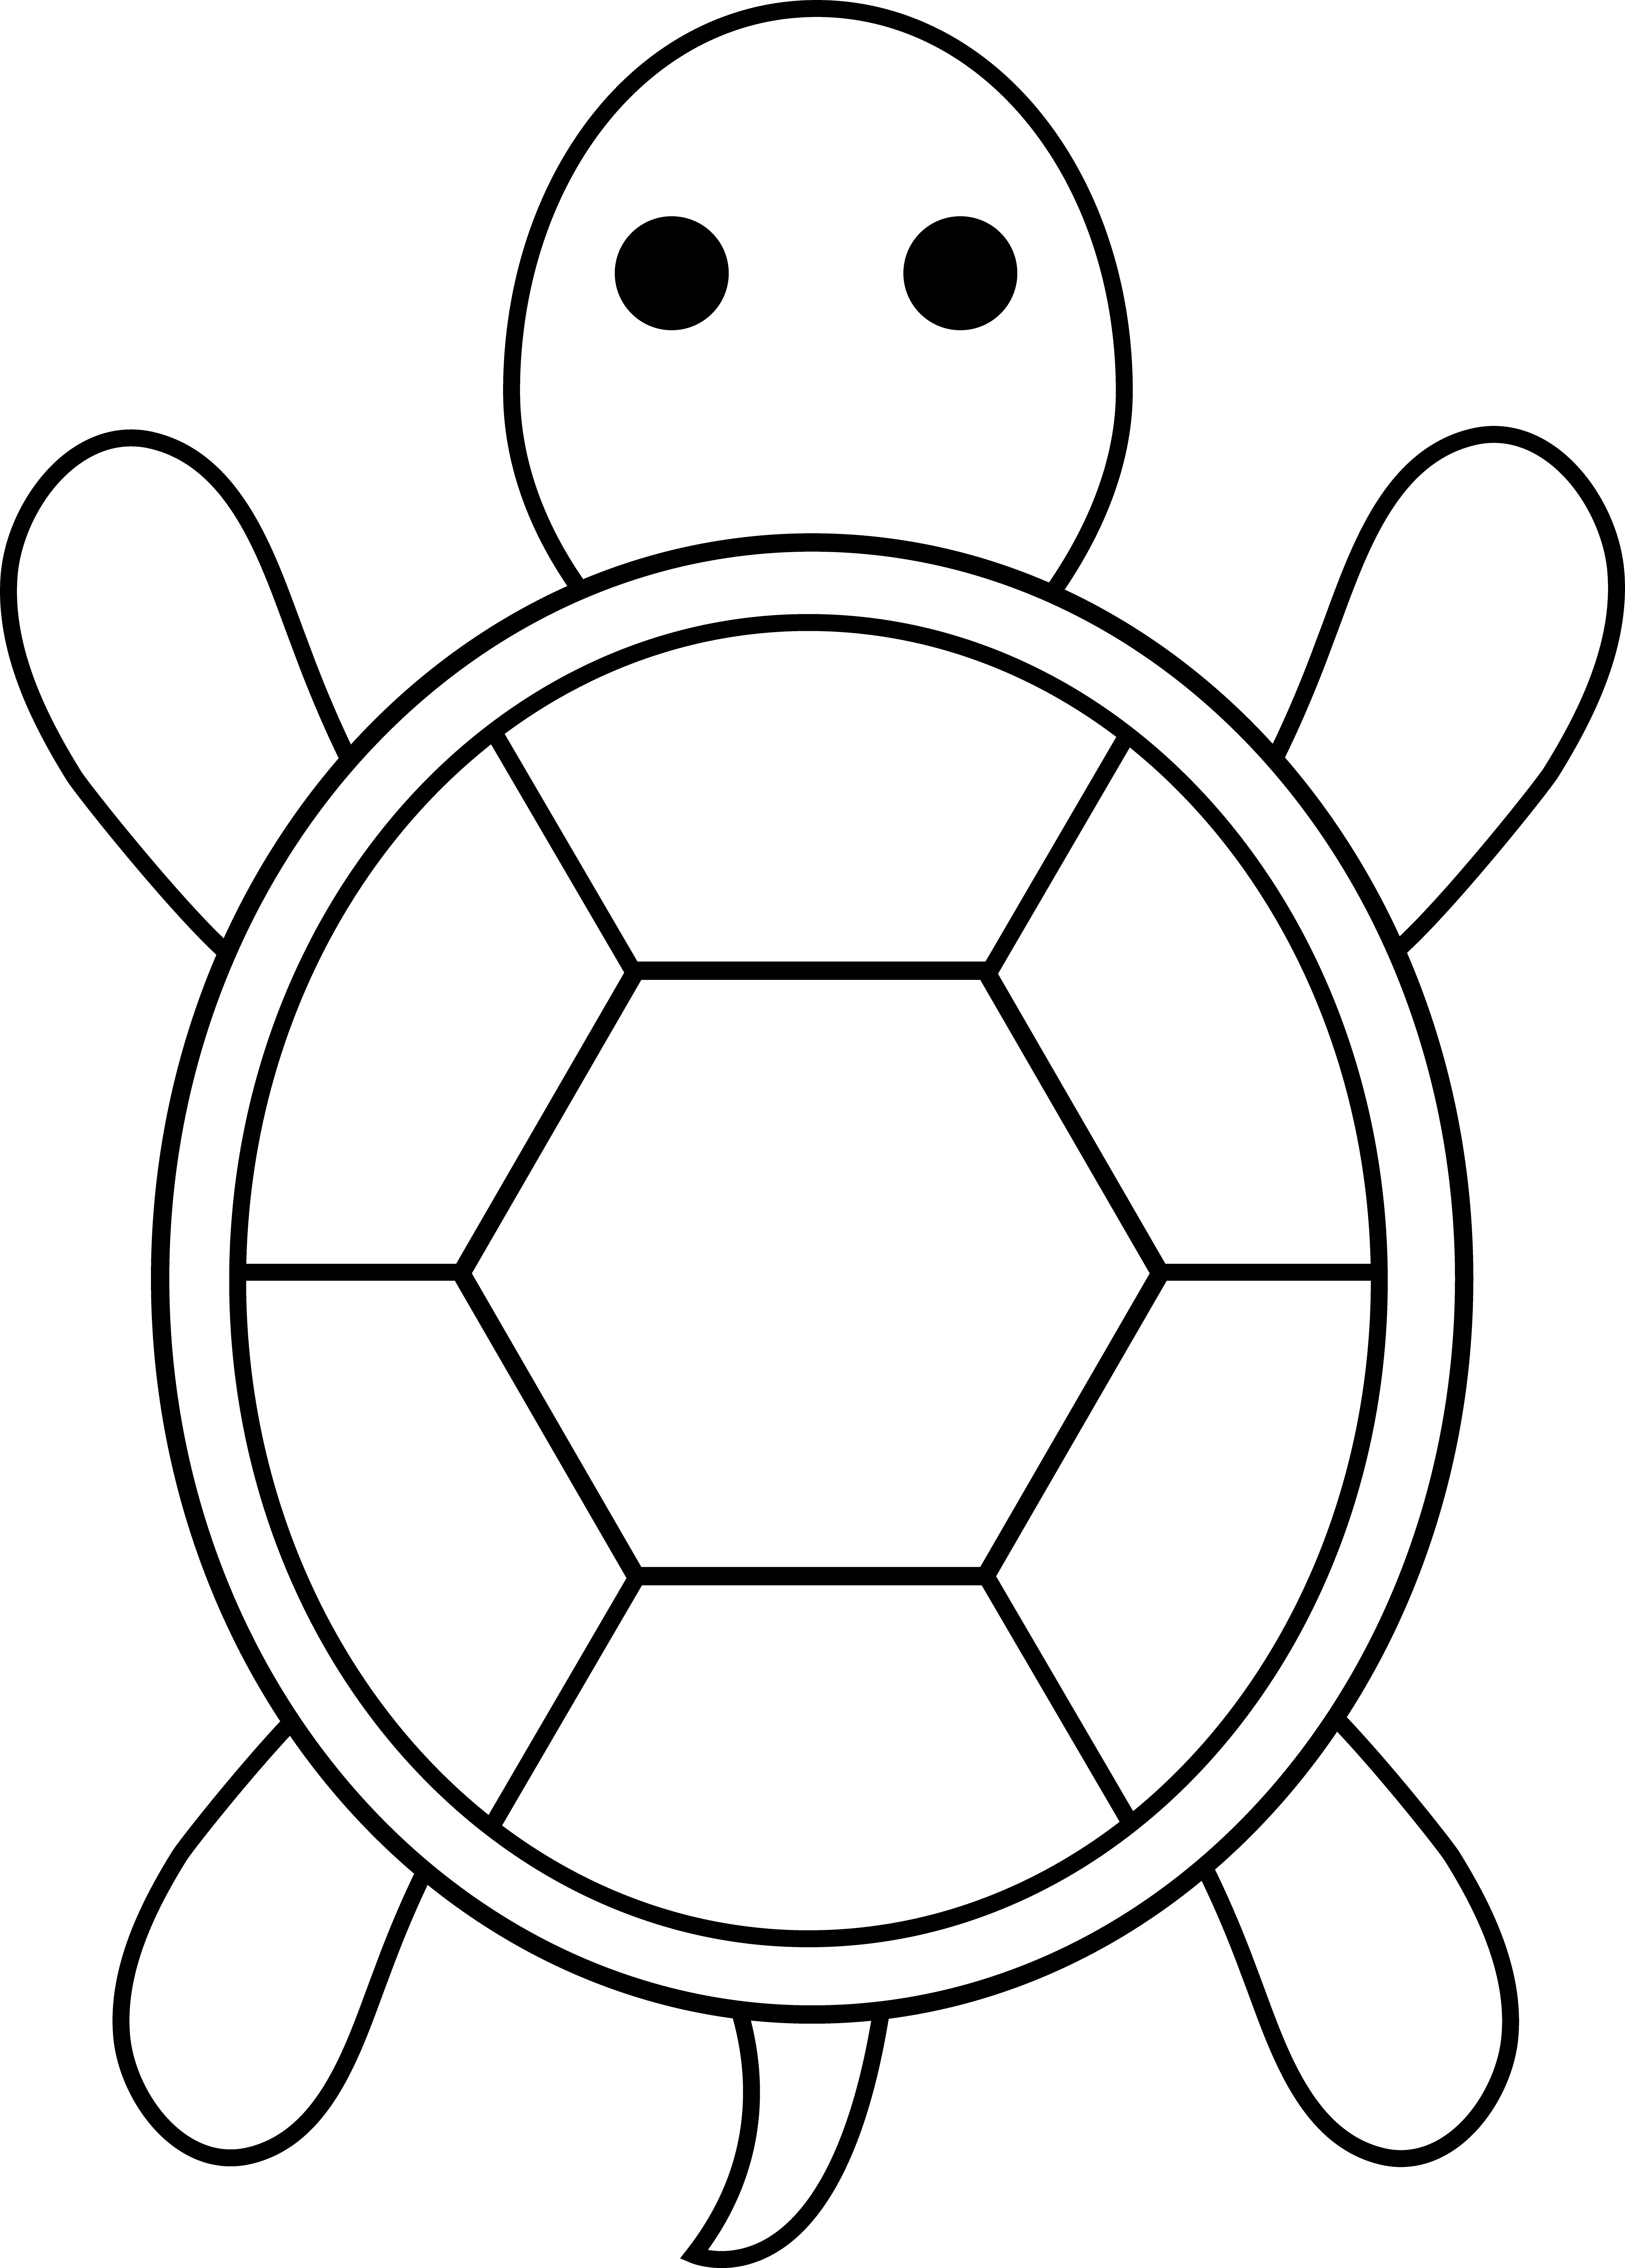 Football page clipart outline svg Turtle for applique | Applique | Pinterest | Turtle, Outlines and ... svg